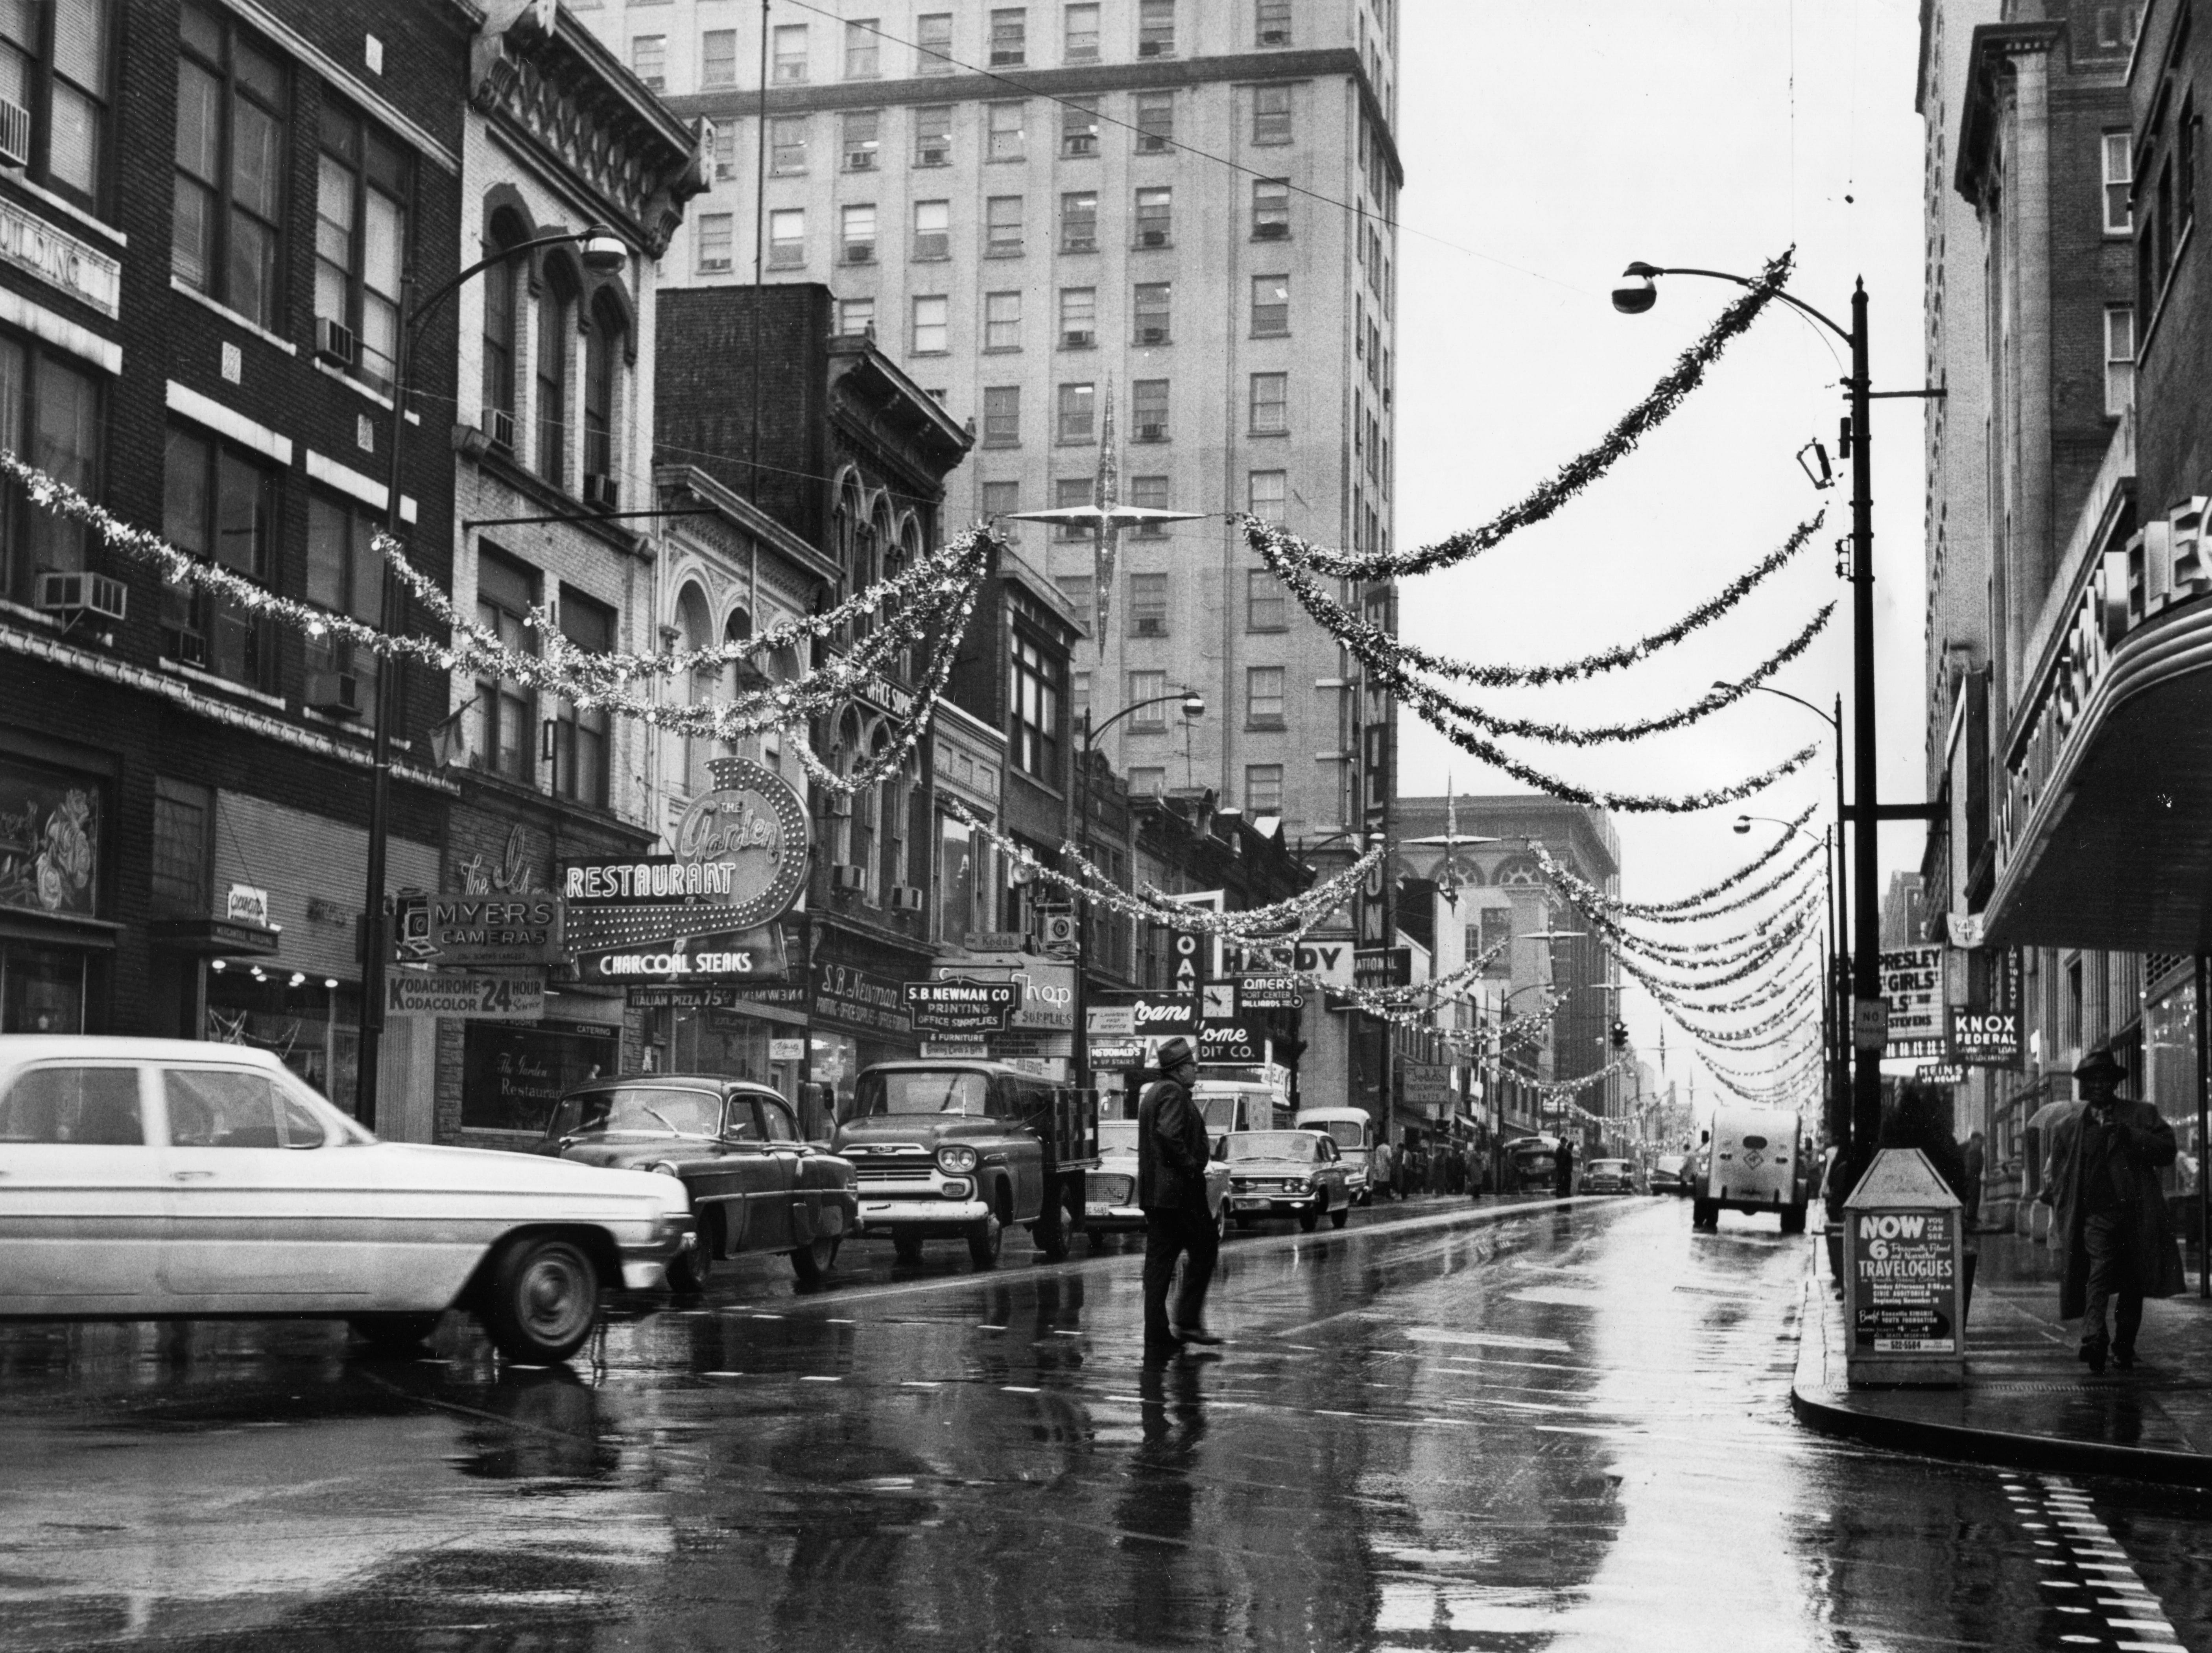 Another view of the Gay Street 'Starlight Stairway' Christmas decorations on Nov. 23, 1962.